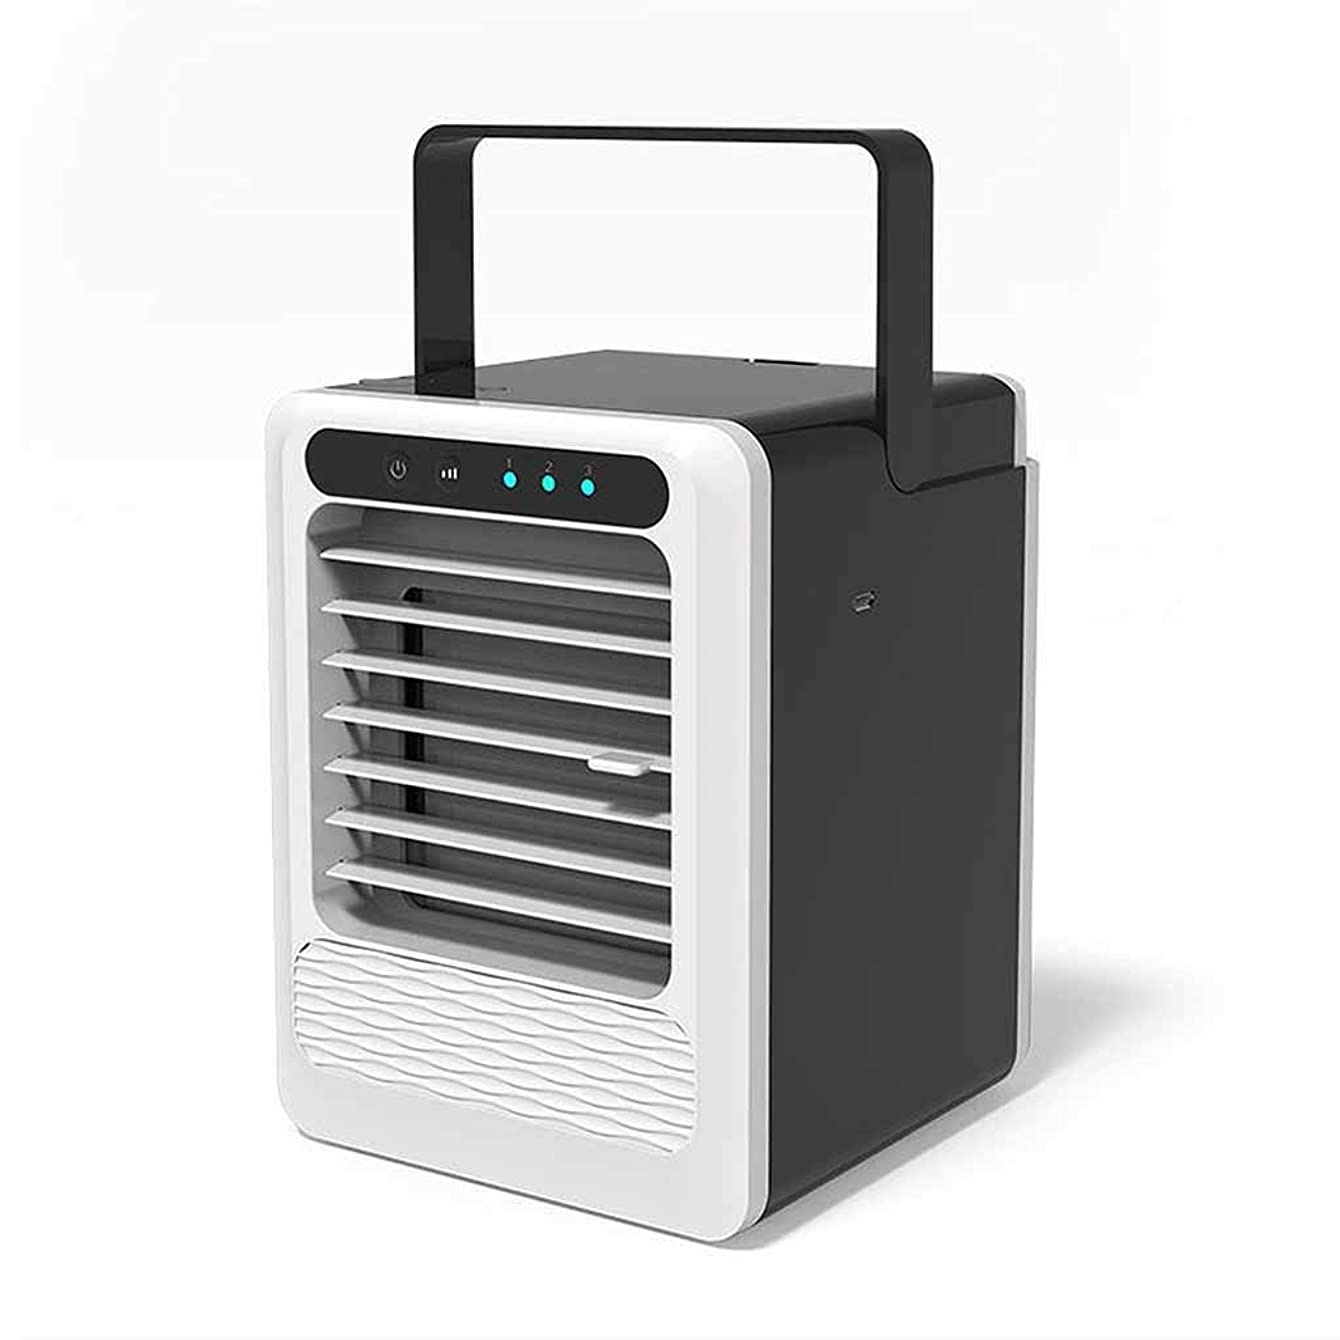 Mini Cooling Fan Quiet, Portable Air Conditioner with Air Purifier Humidifier, USB Personal Air Cooler Small Window Air Conditioner for Indoor and Home